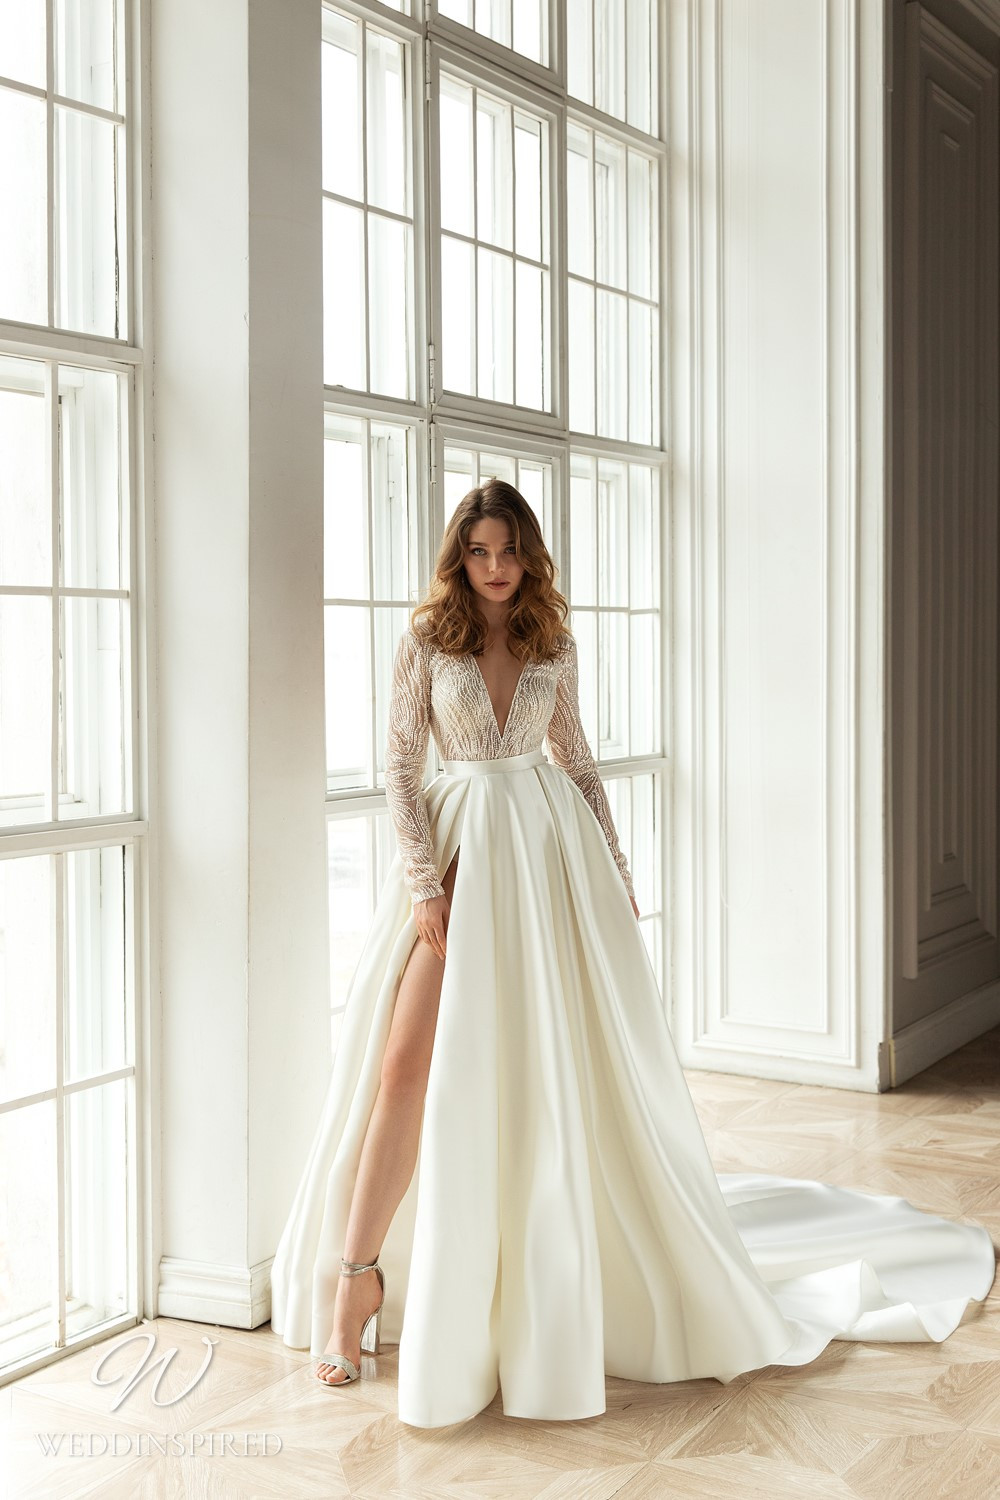 An Eva Lendel 2021 ivory silk ball gown wedding dress with long sleeves and a high slit